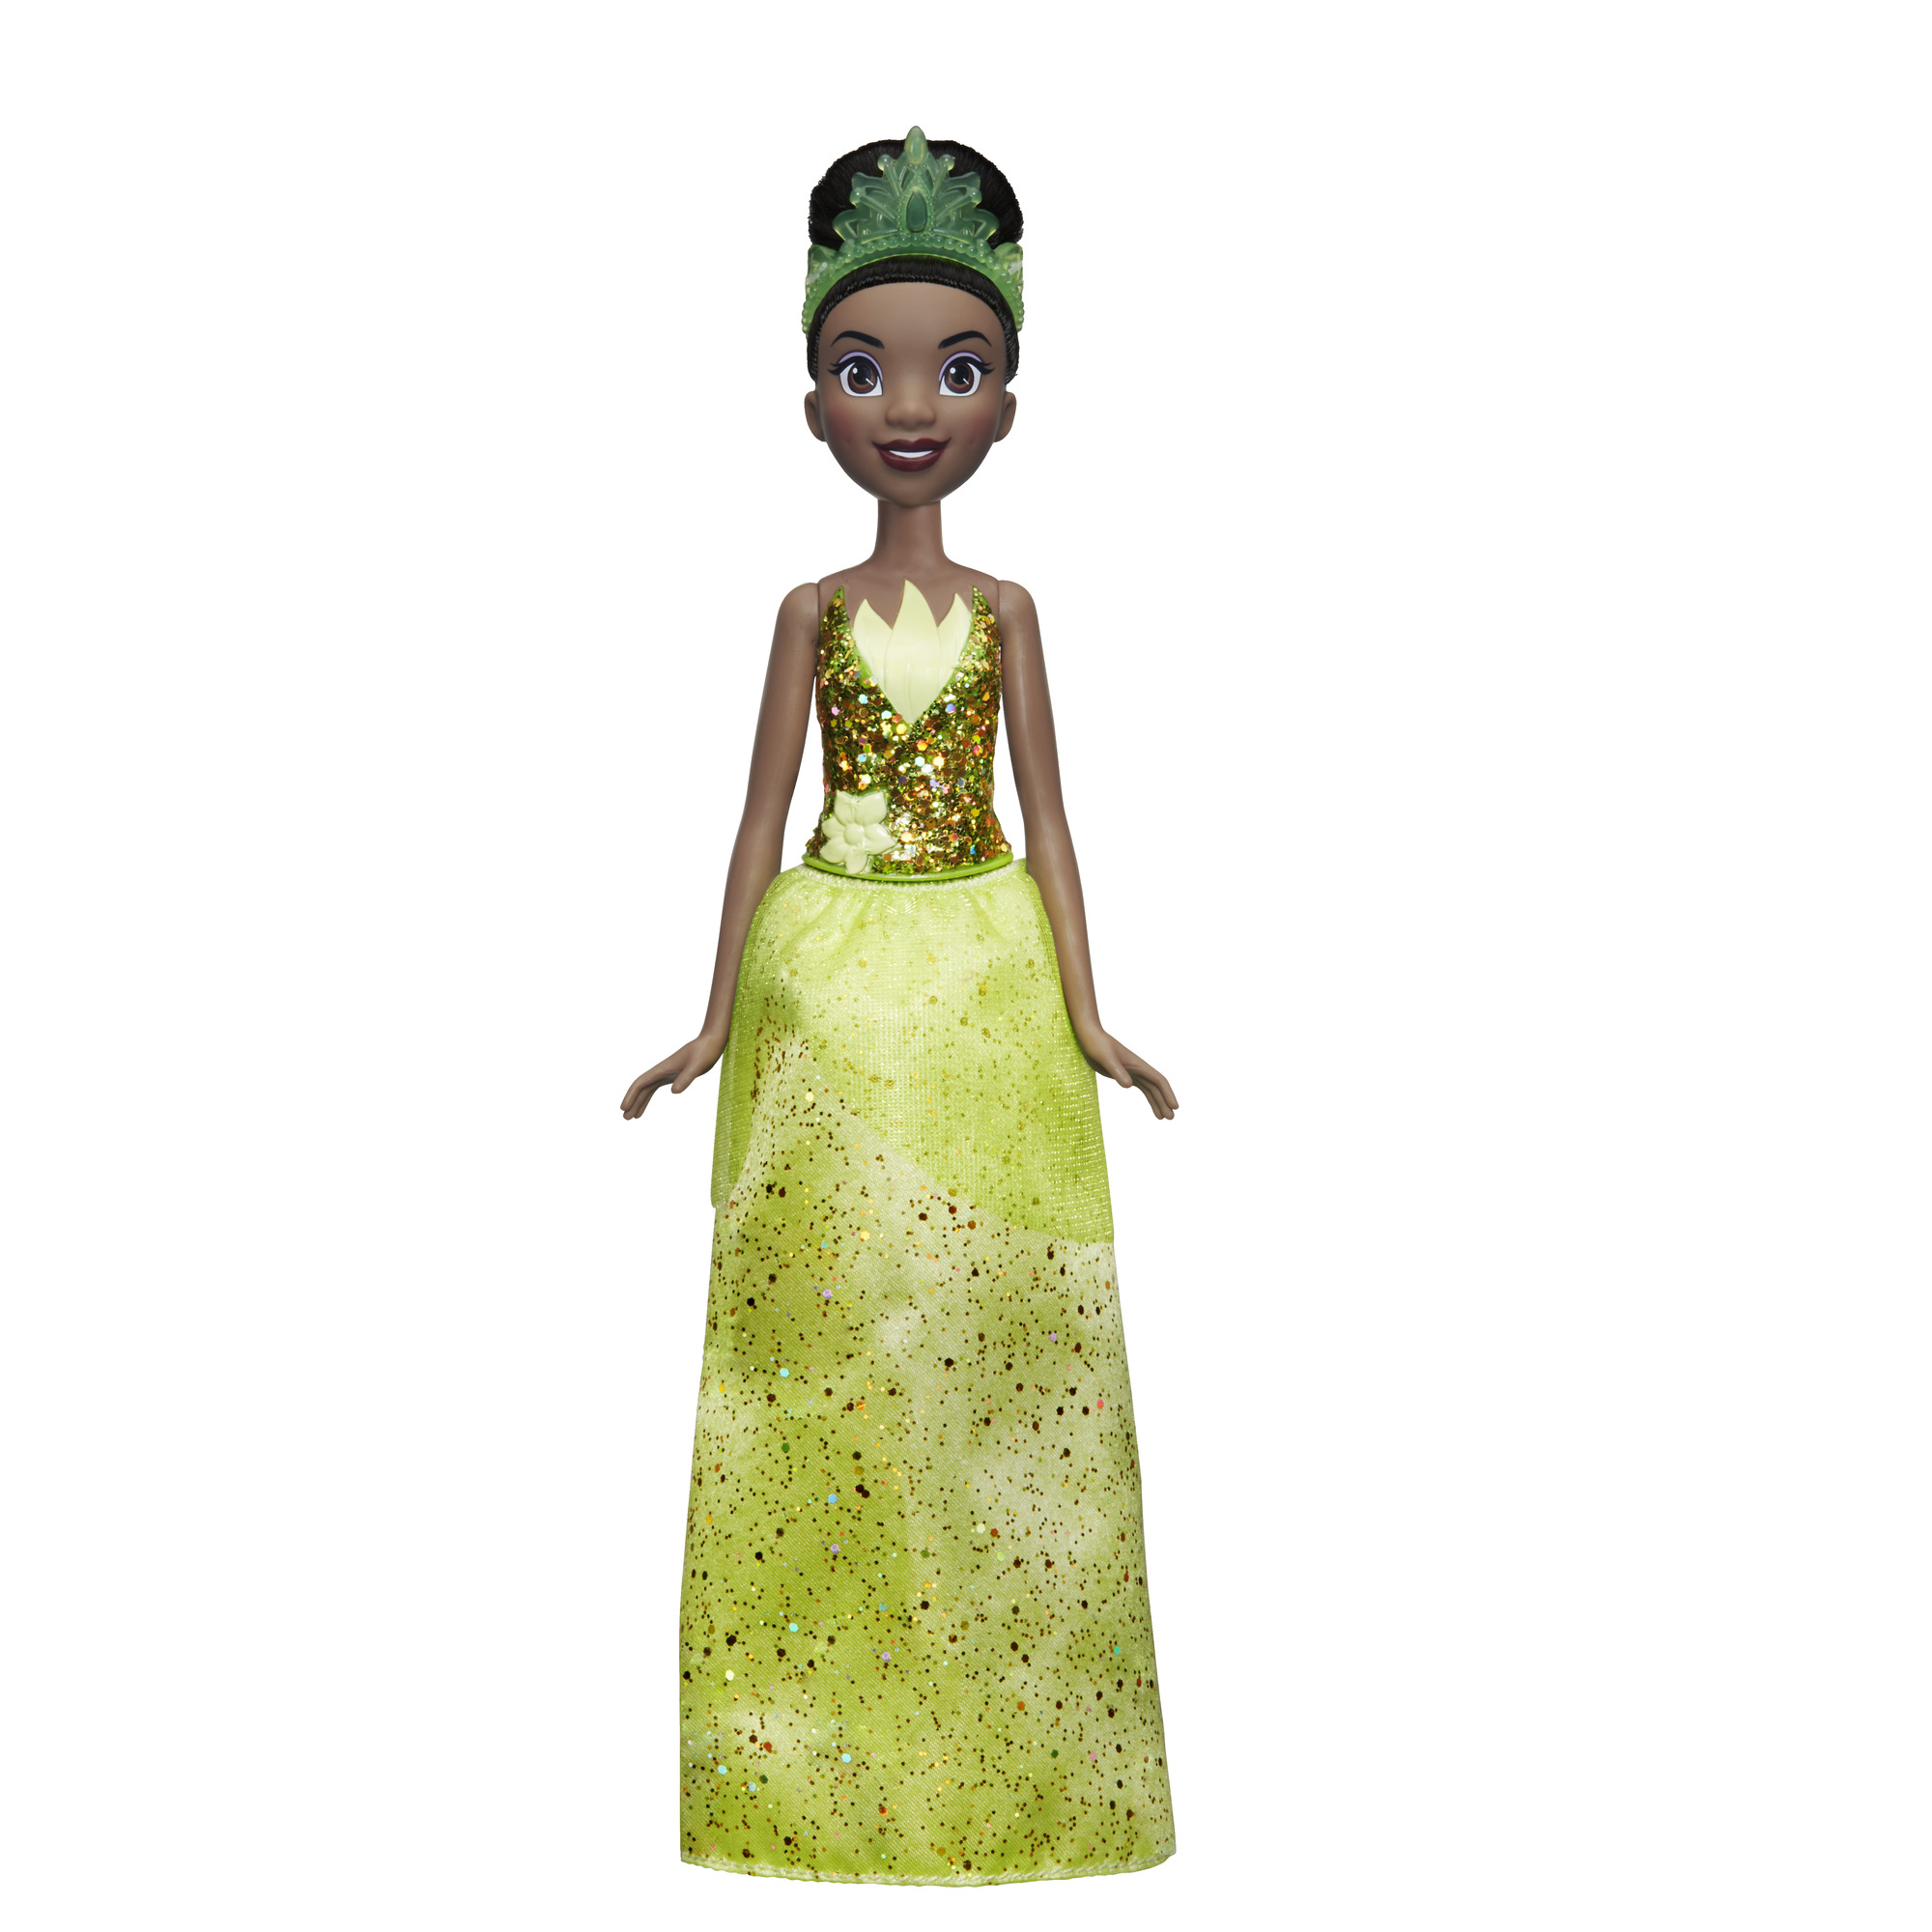 Disney Princess Royal Shimmer Tiana, Ages 3 and up